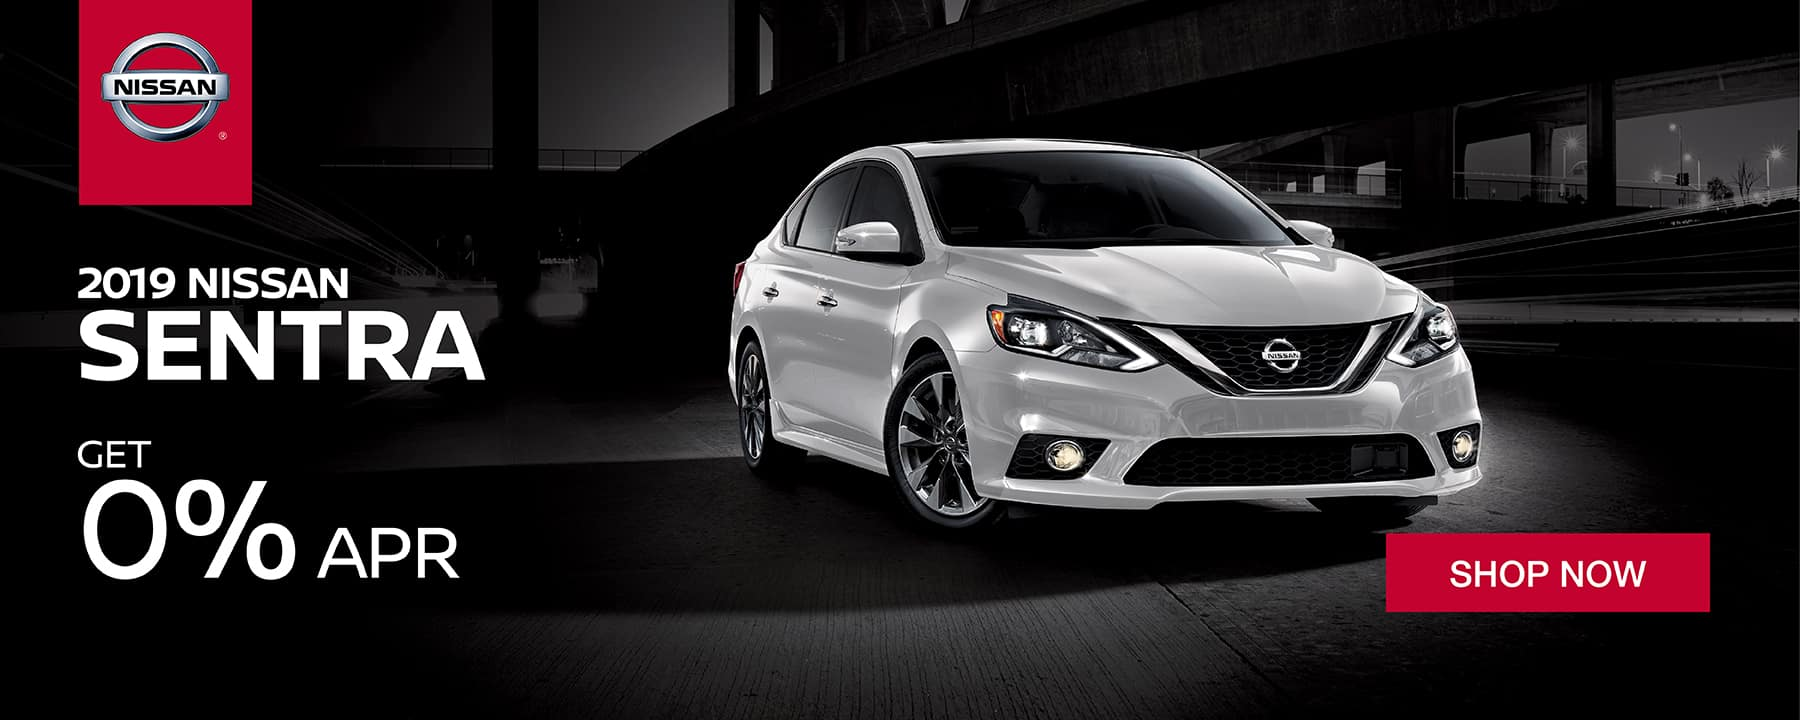 hight resolution of shop the 2019 nissan sentra now at berman nissan of chicago